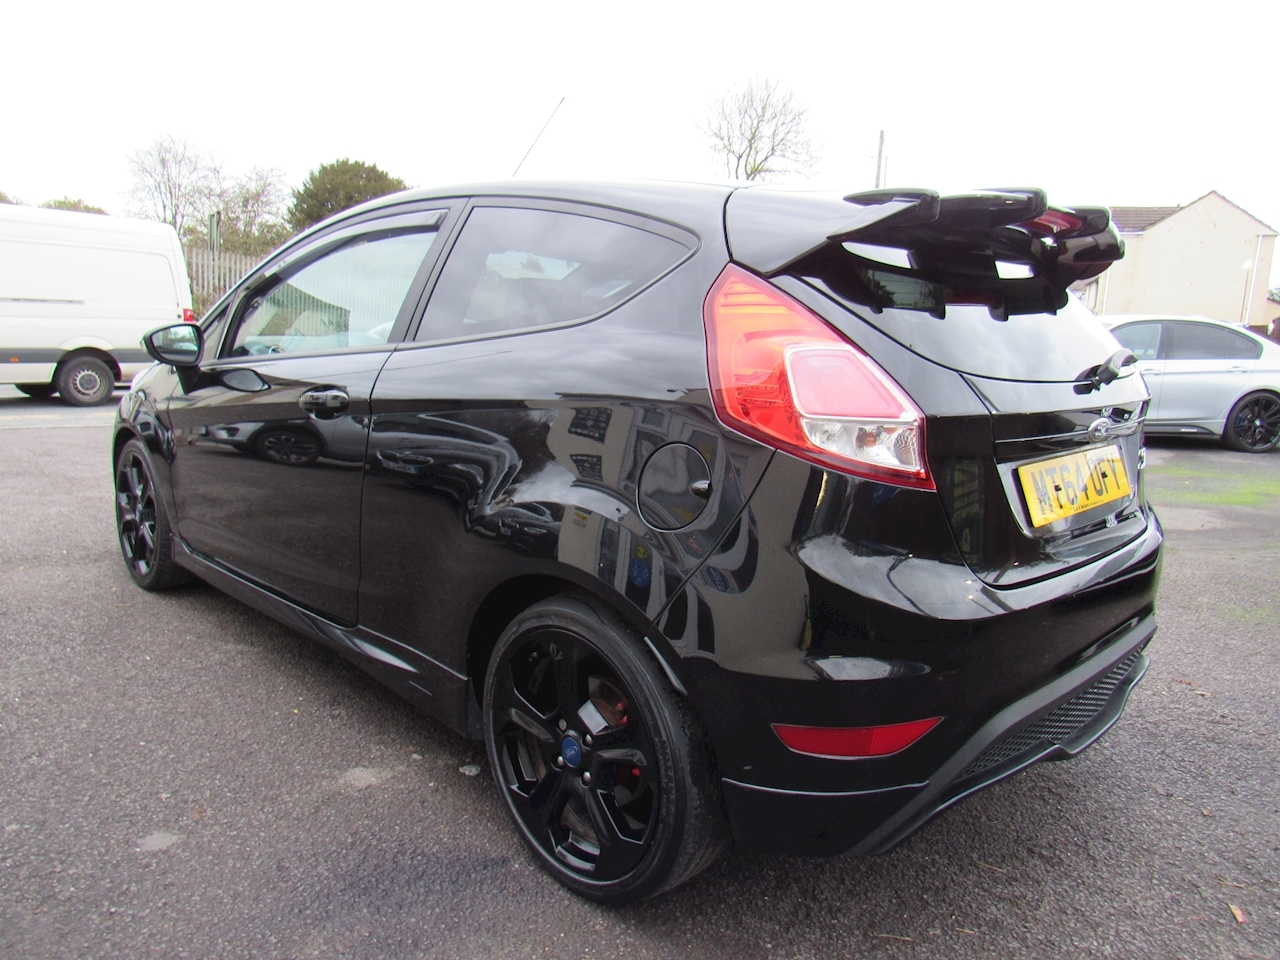 Ford Fiesta ST-3 Hatchback 1.6 Manual Petrol